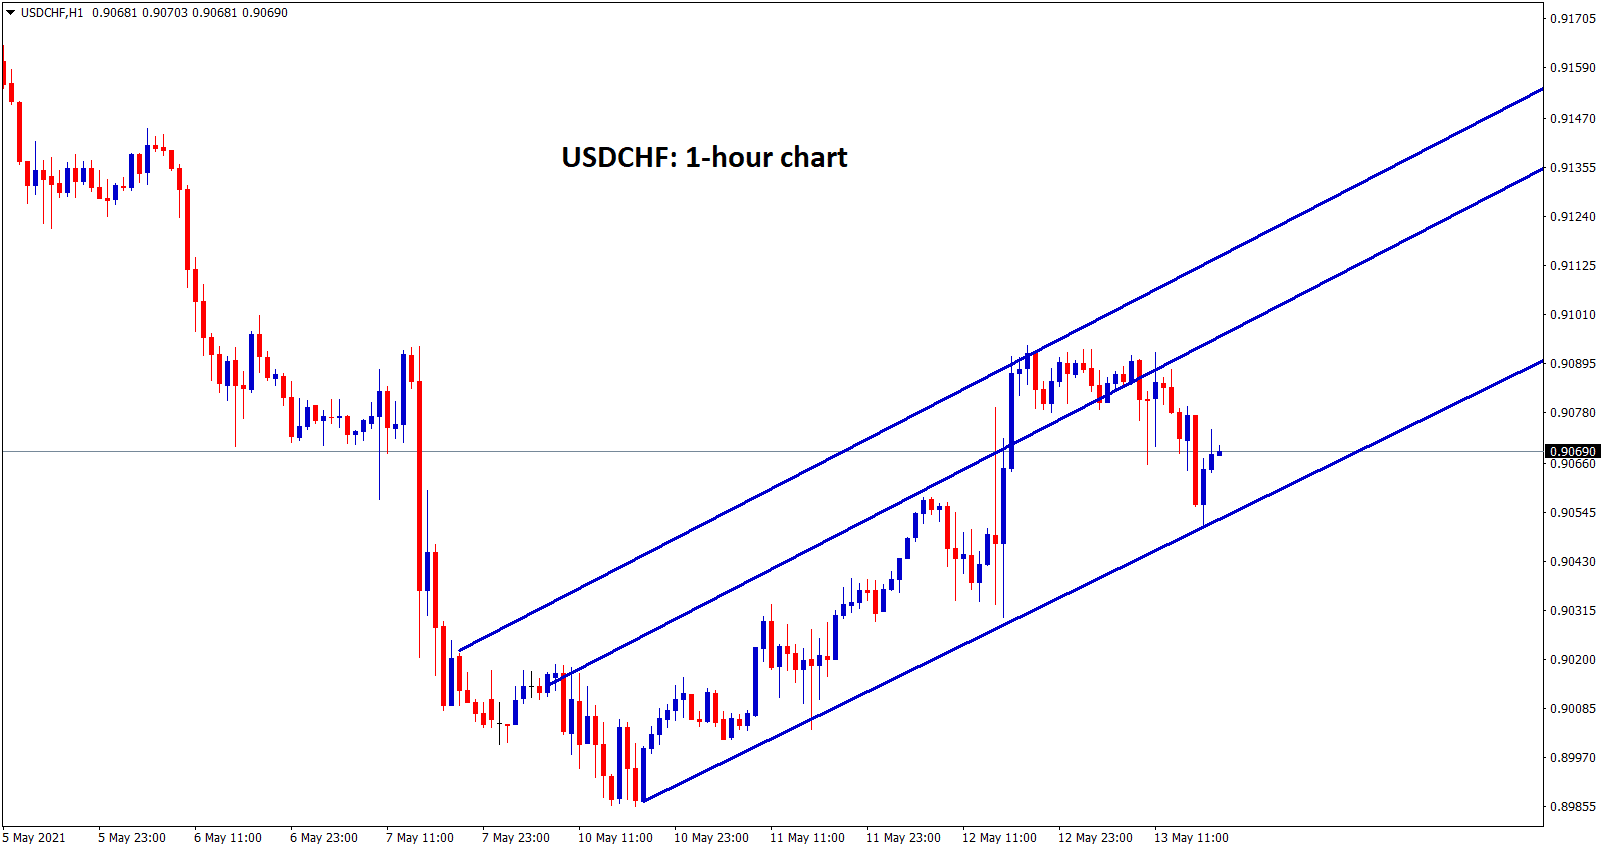 USDCHF moving in an uptrend in 30 min chart.